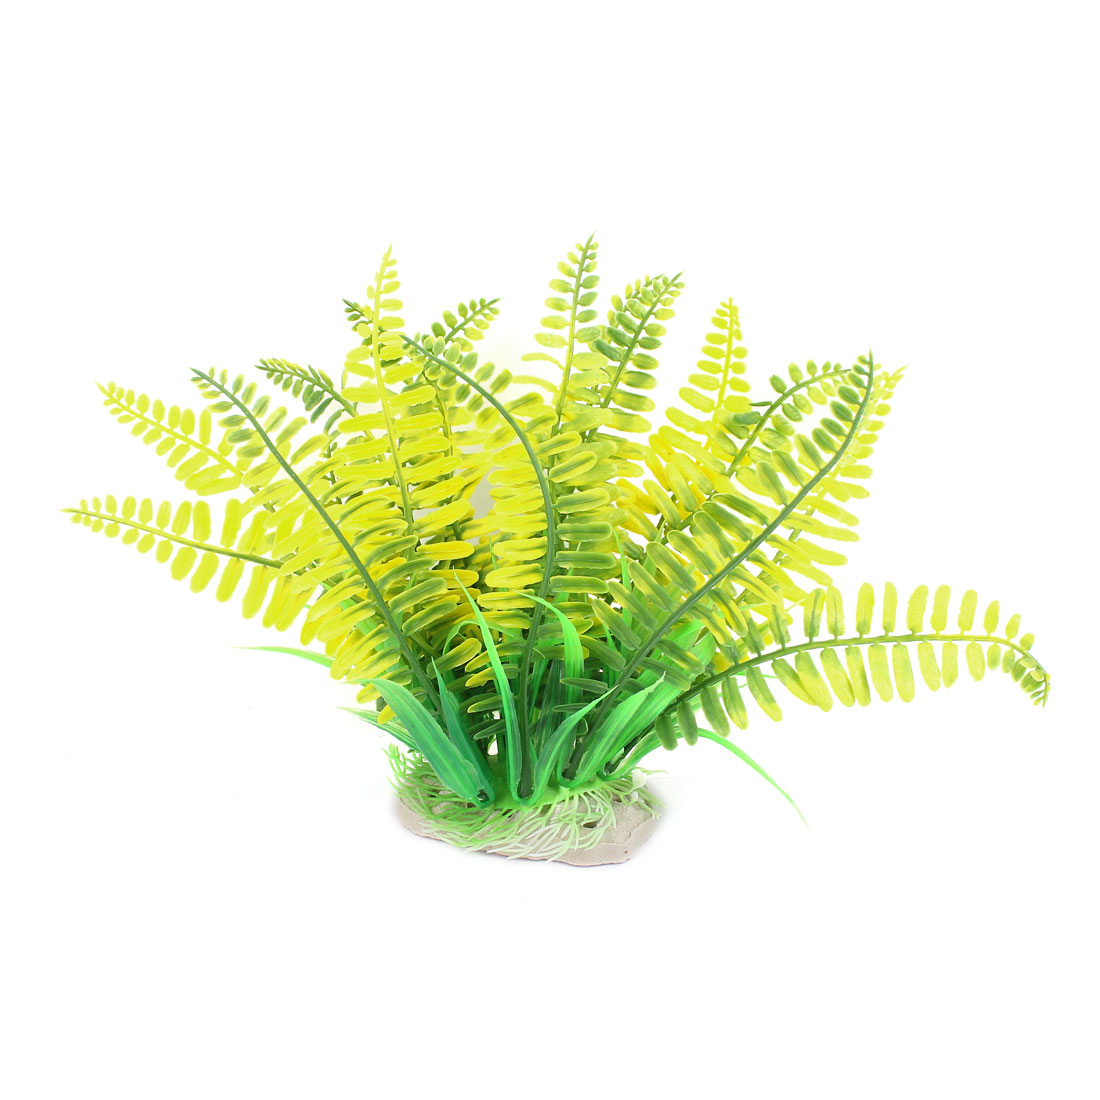 Aquarium Fish Tank Ceramic Base Artificial Plant Grass Decor 19cm Height Yellow